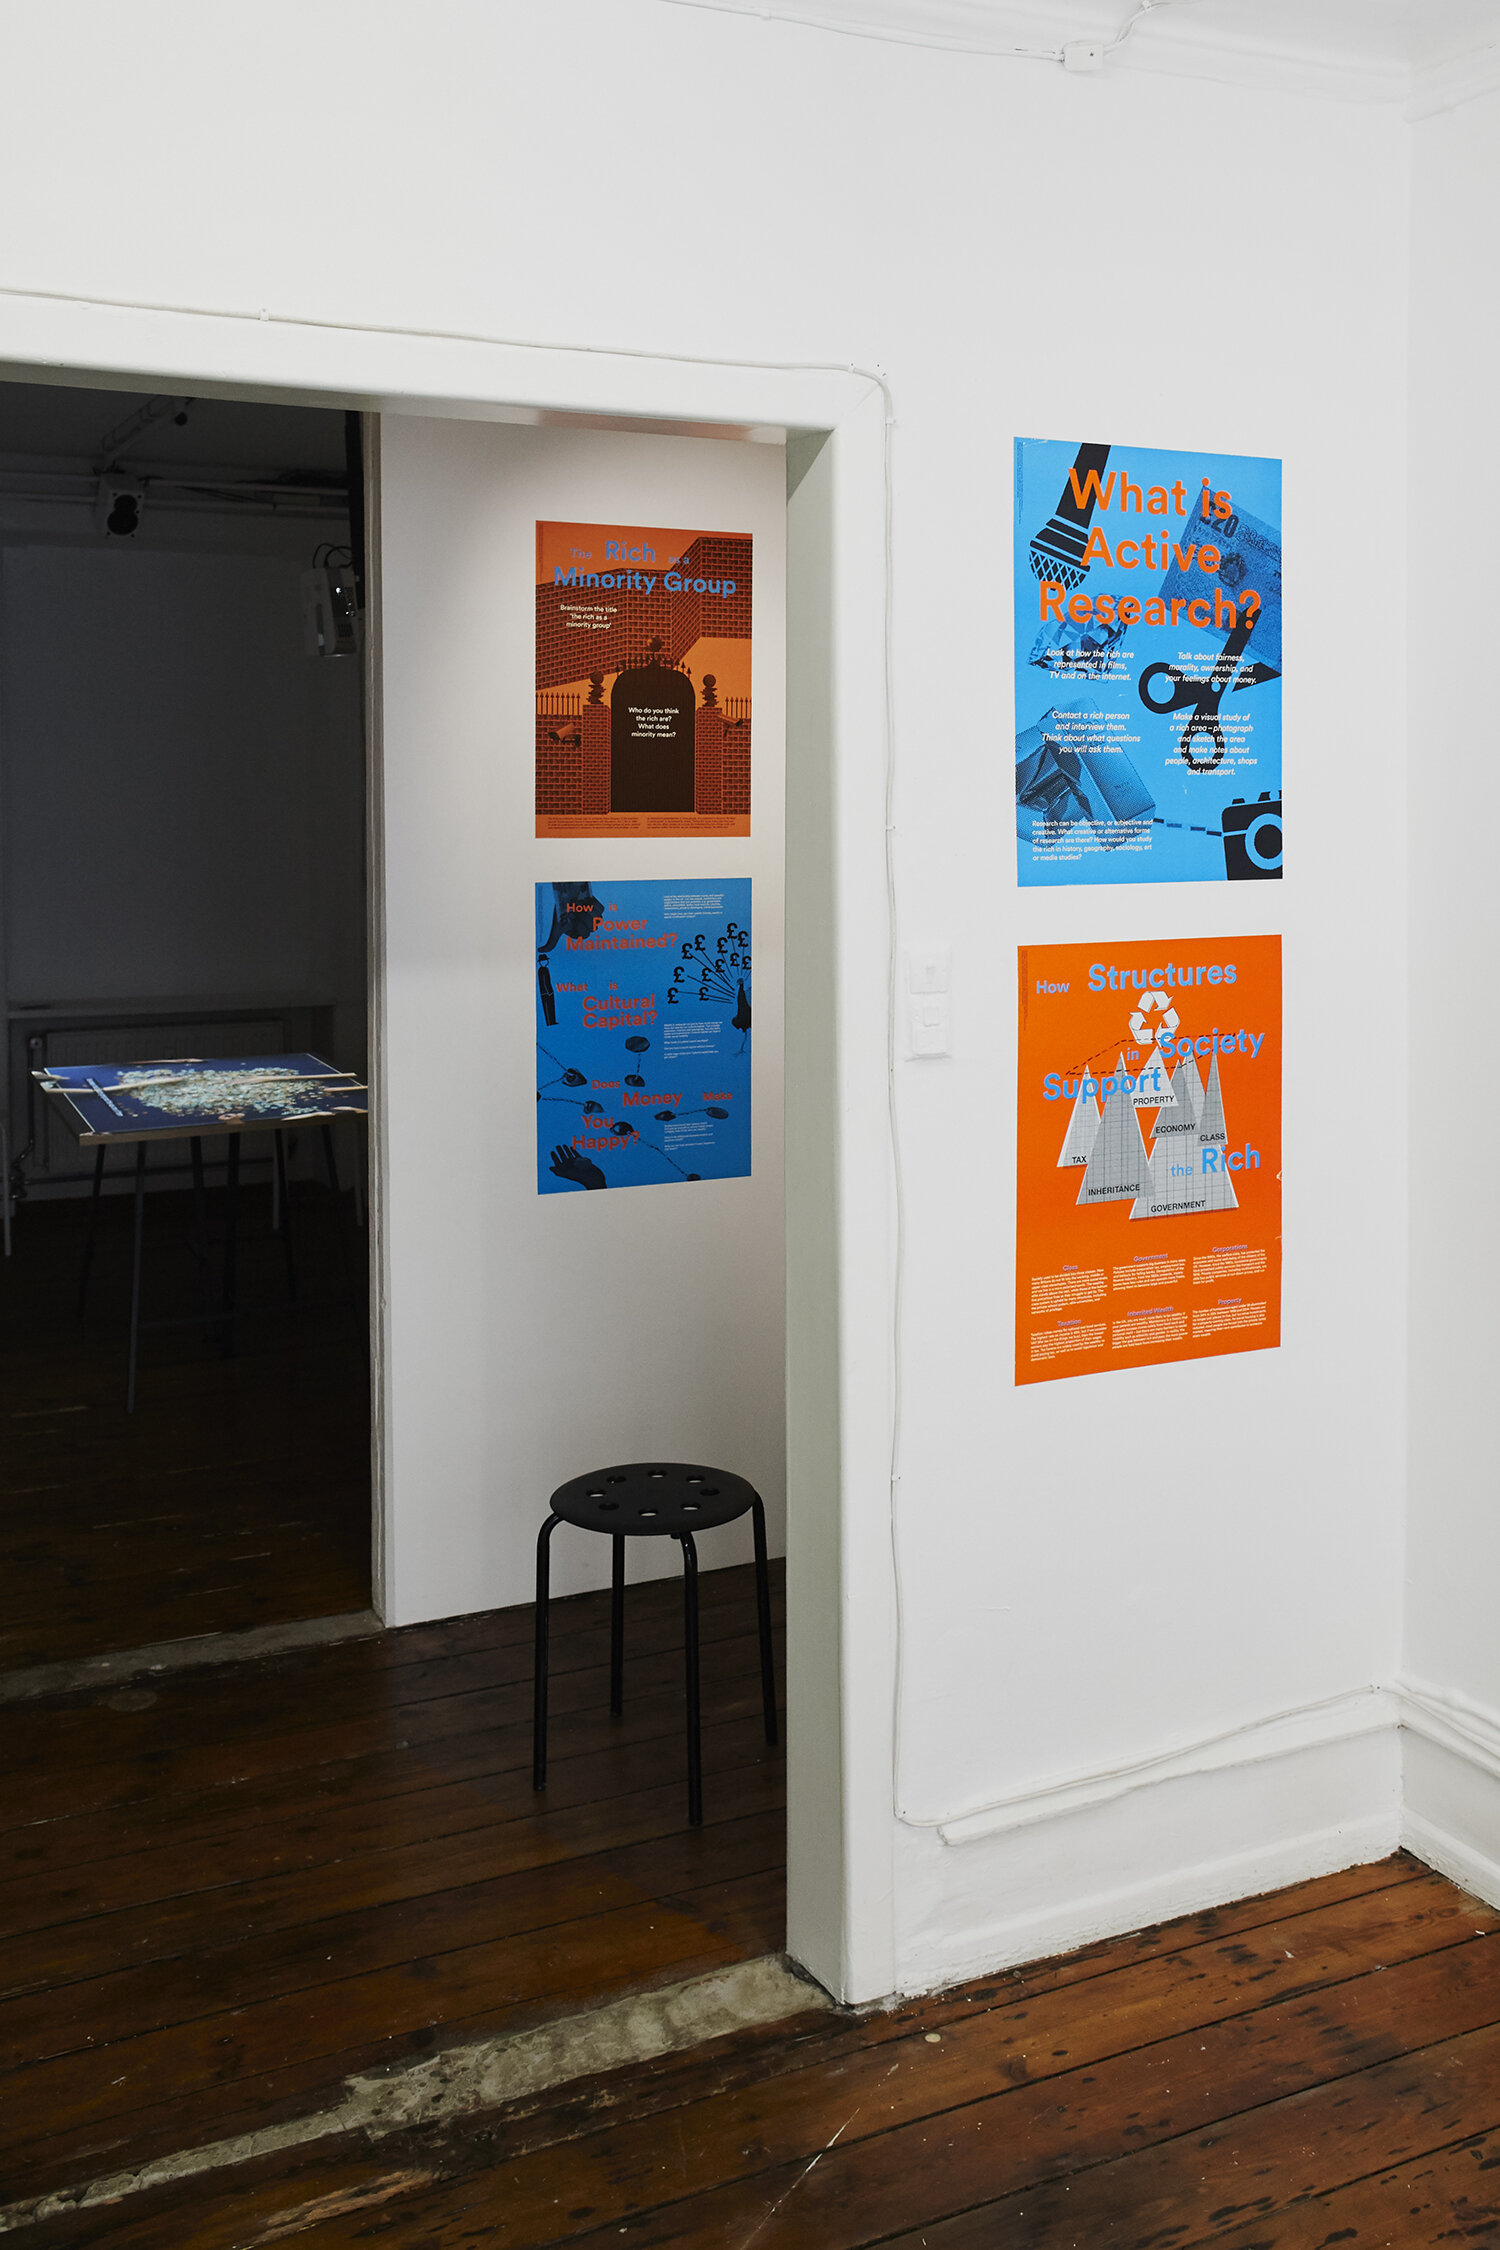 The Alternative School of Economics, Teaching Posters: The Rich as a Minority Group; Power, Capital and Happiness; Structures in Society; What is Active Research? (2016). Lithographic print on paper. Photo: SixtyEight Art Institute, 2019.